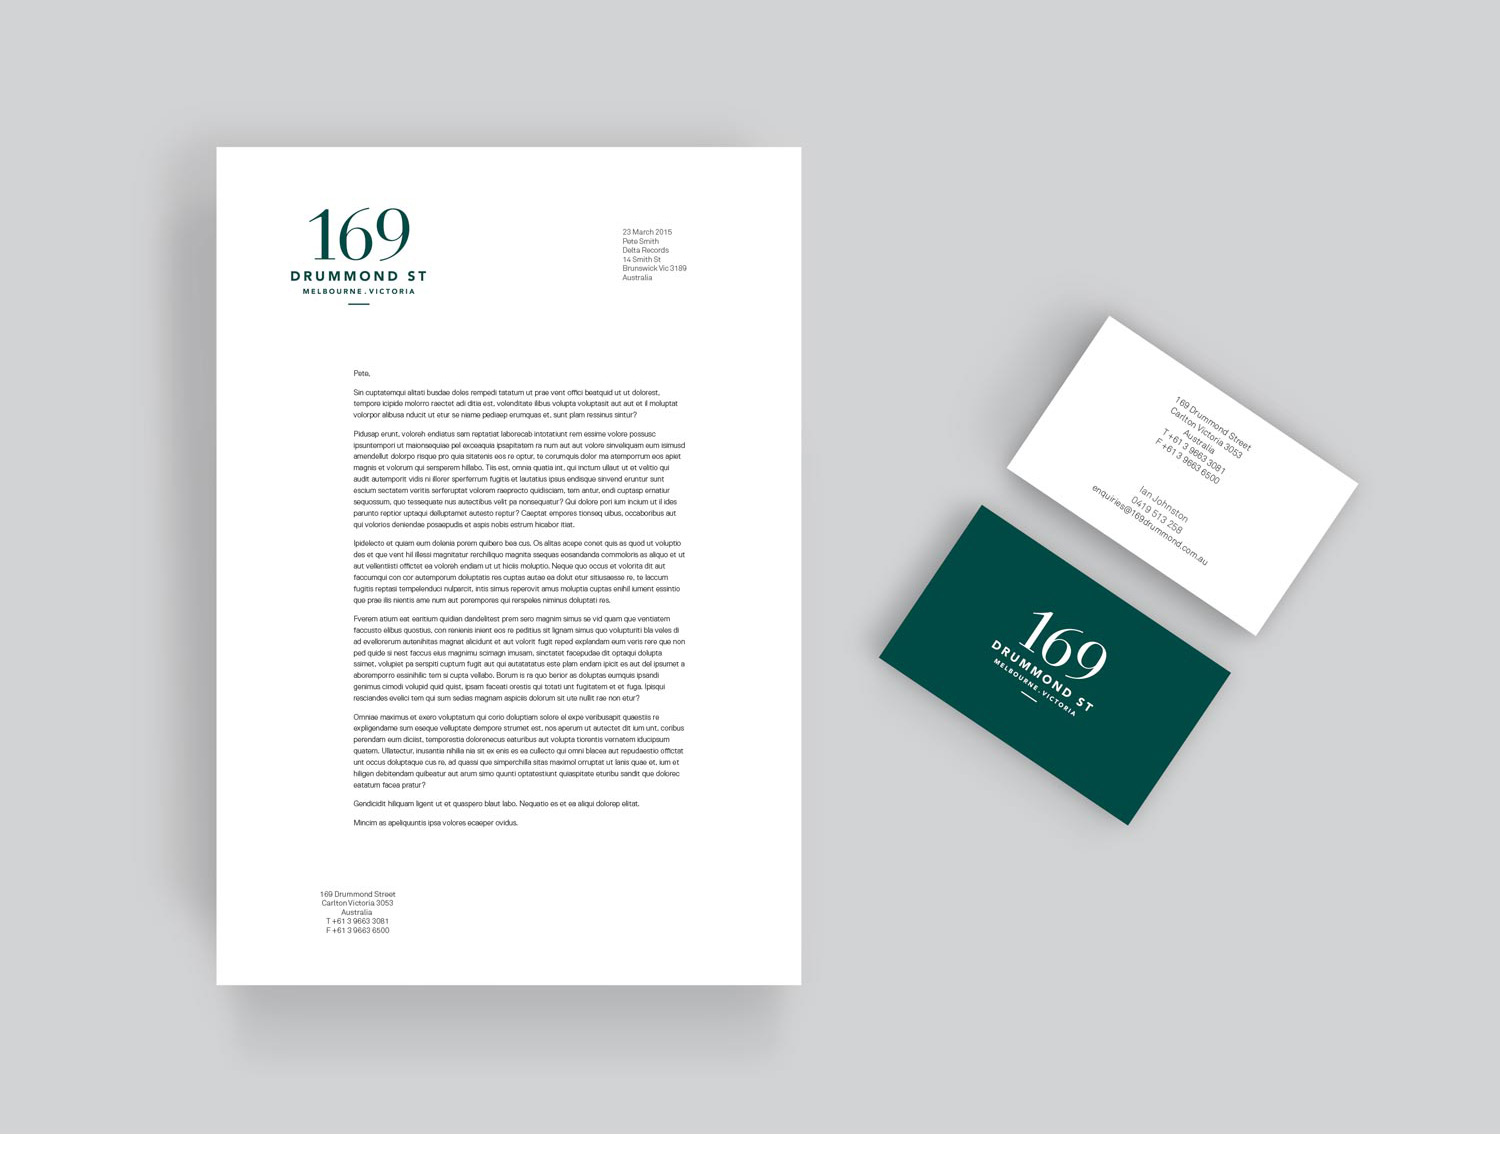 169 drummond street collateral